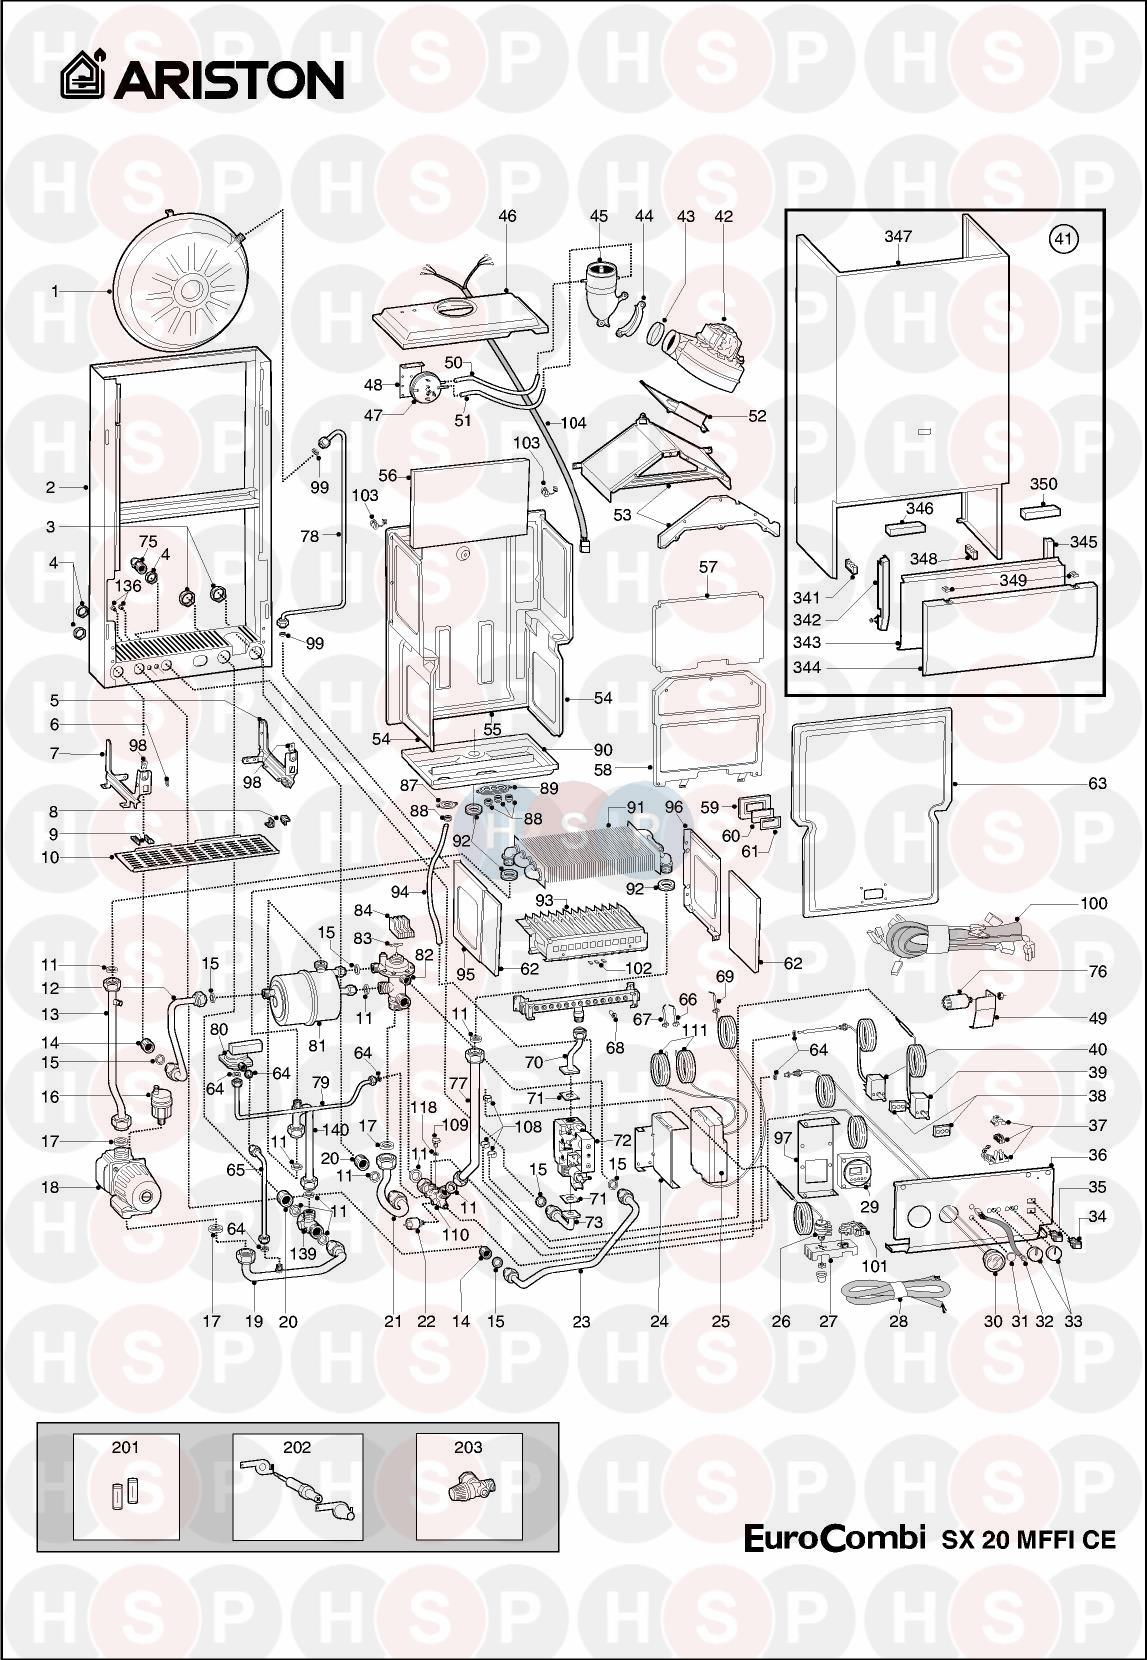 Ariston SX 20 MFFI CE EDITION2 (EXPLODED VIEW) Diagram